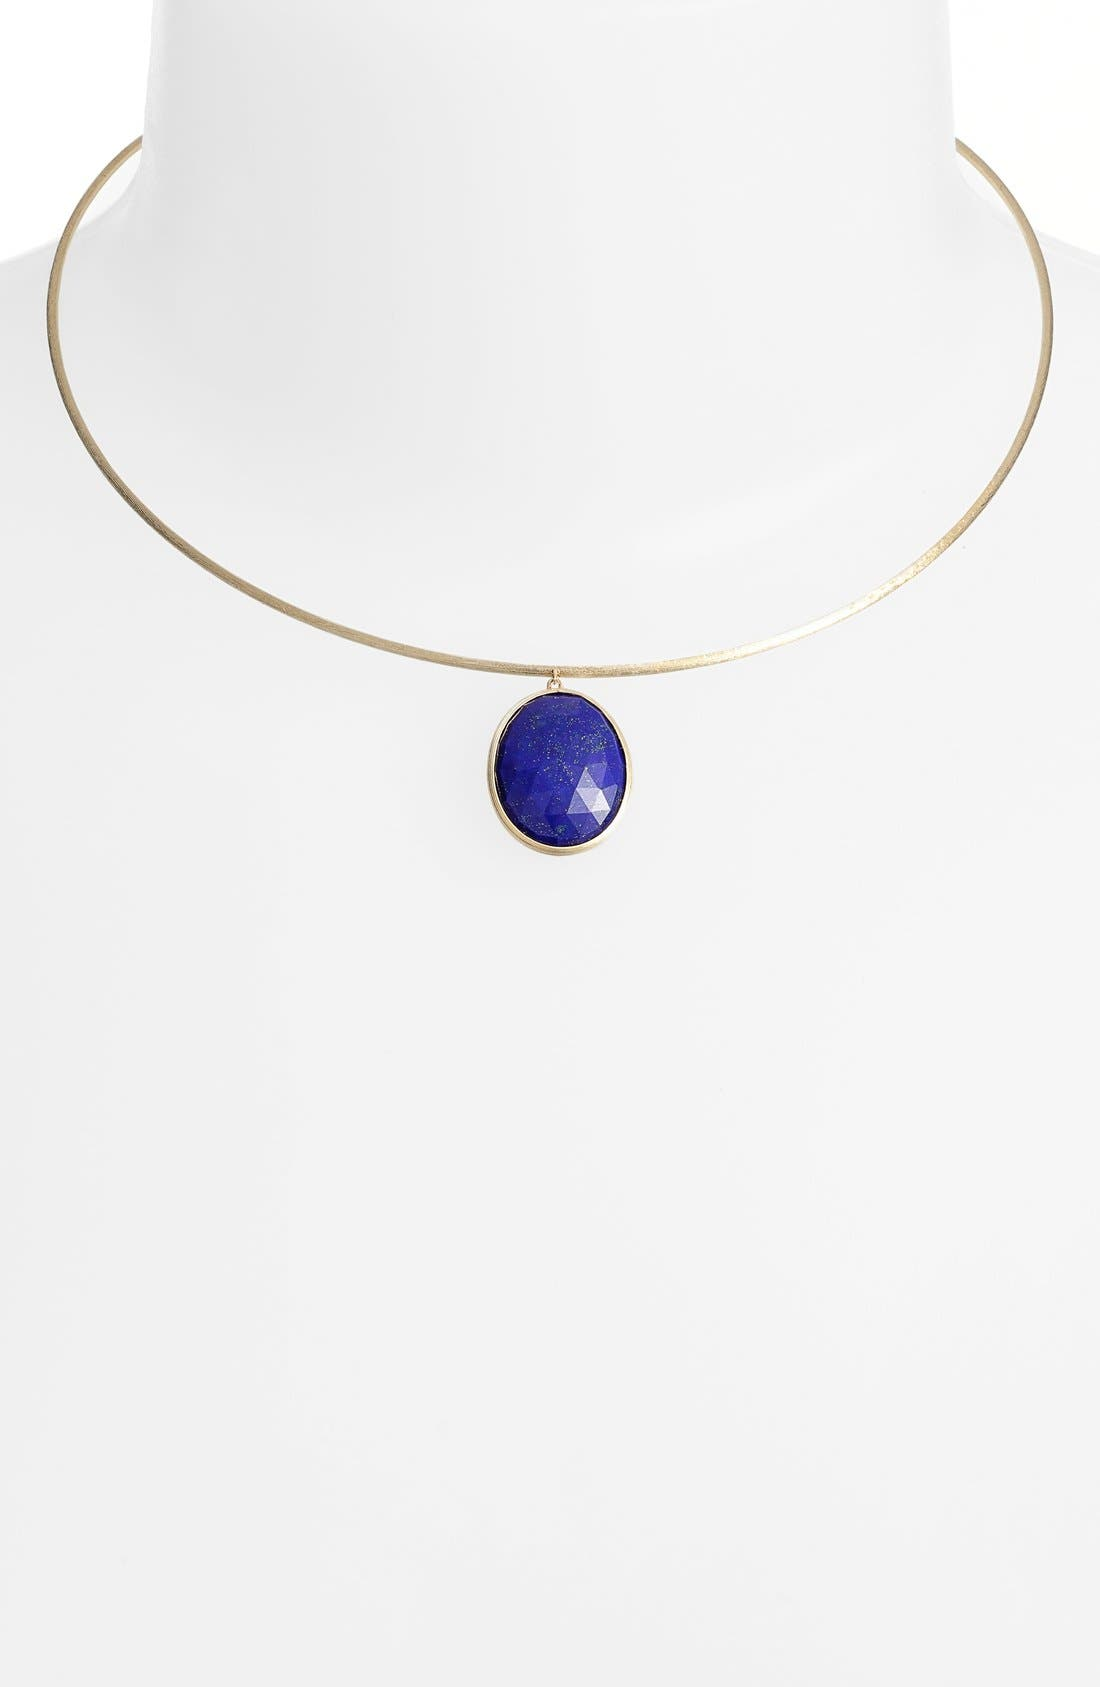 'Lunaria' Lapis Collar Necklace,                             Alternate thumbnail 2, color,                             YELLOW GOLD/ LAPIS